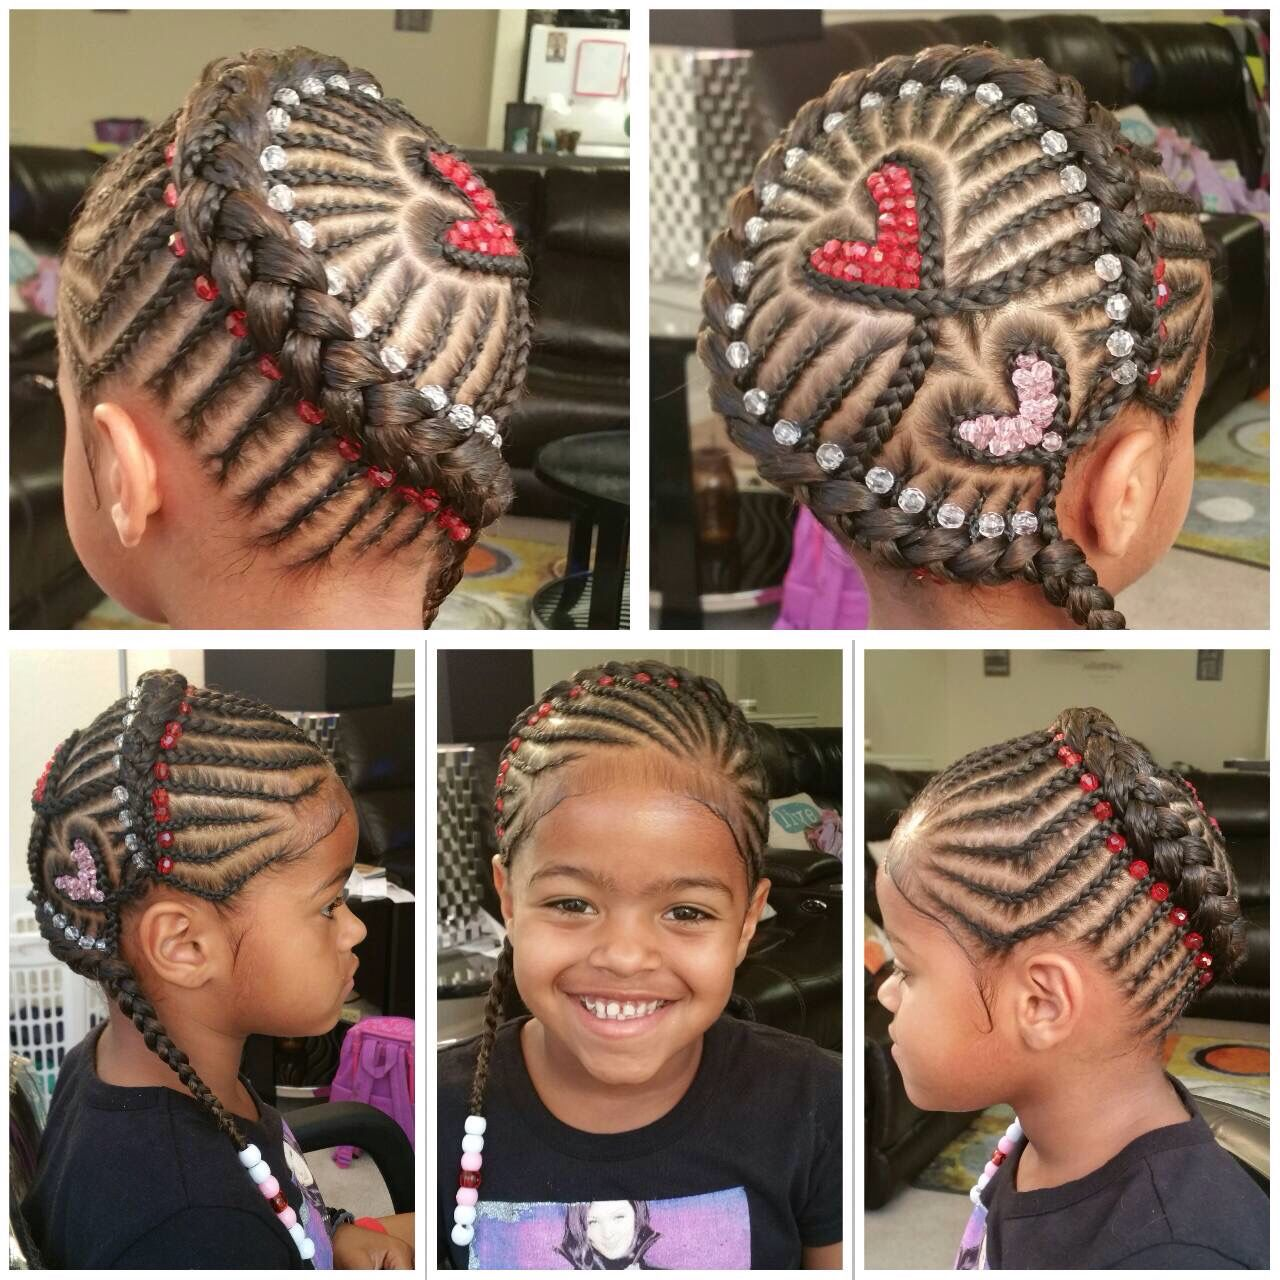 Heart Braid With Beads Braid Styles I Want To Do Kids